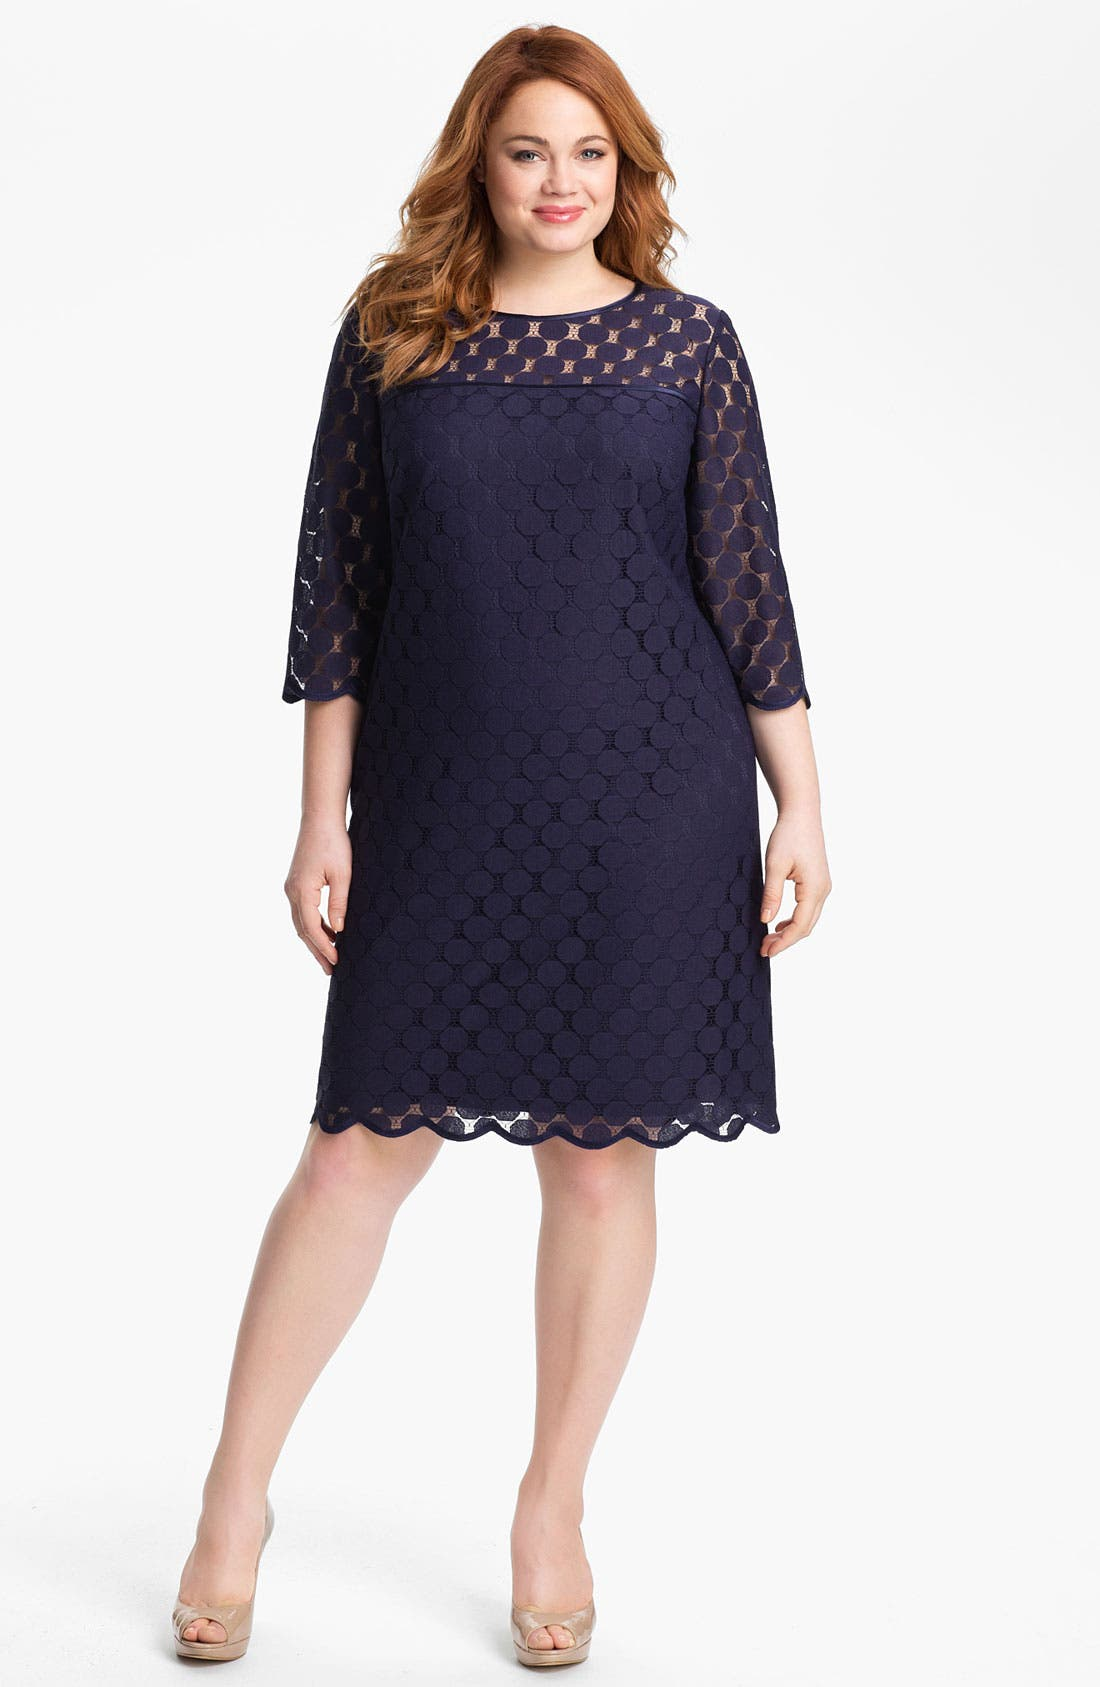 Alternate Image 1 Selected - Adrianna Papell Polka Dot Lace Dress (Plus Size)